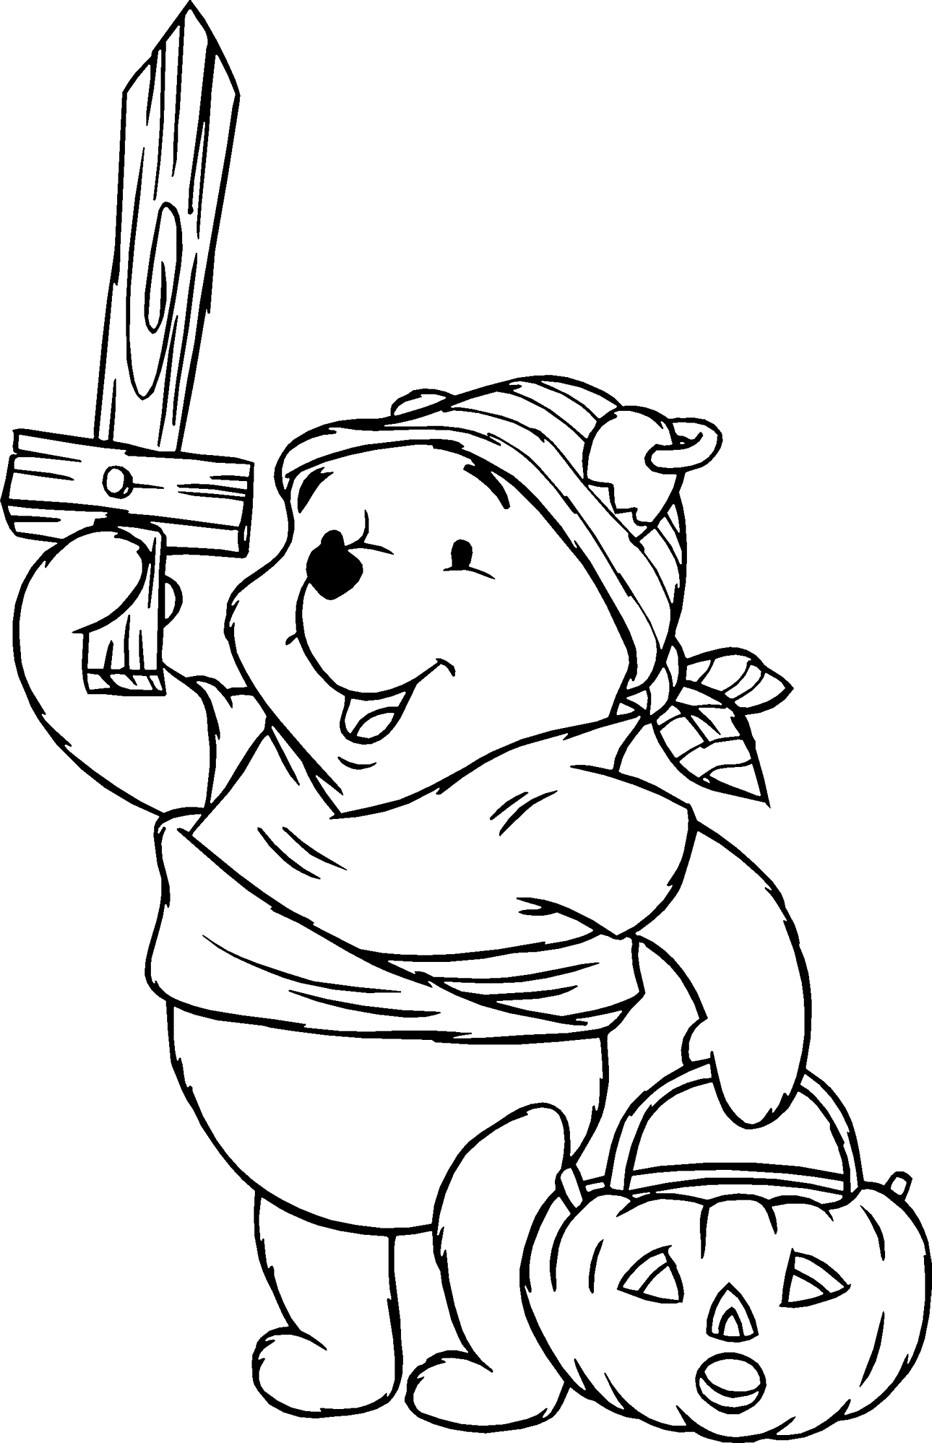 Disney Halloween Coloring Pages For Kids  Pooh Halloween Coloring Pages Disney Coloring Pages